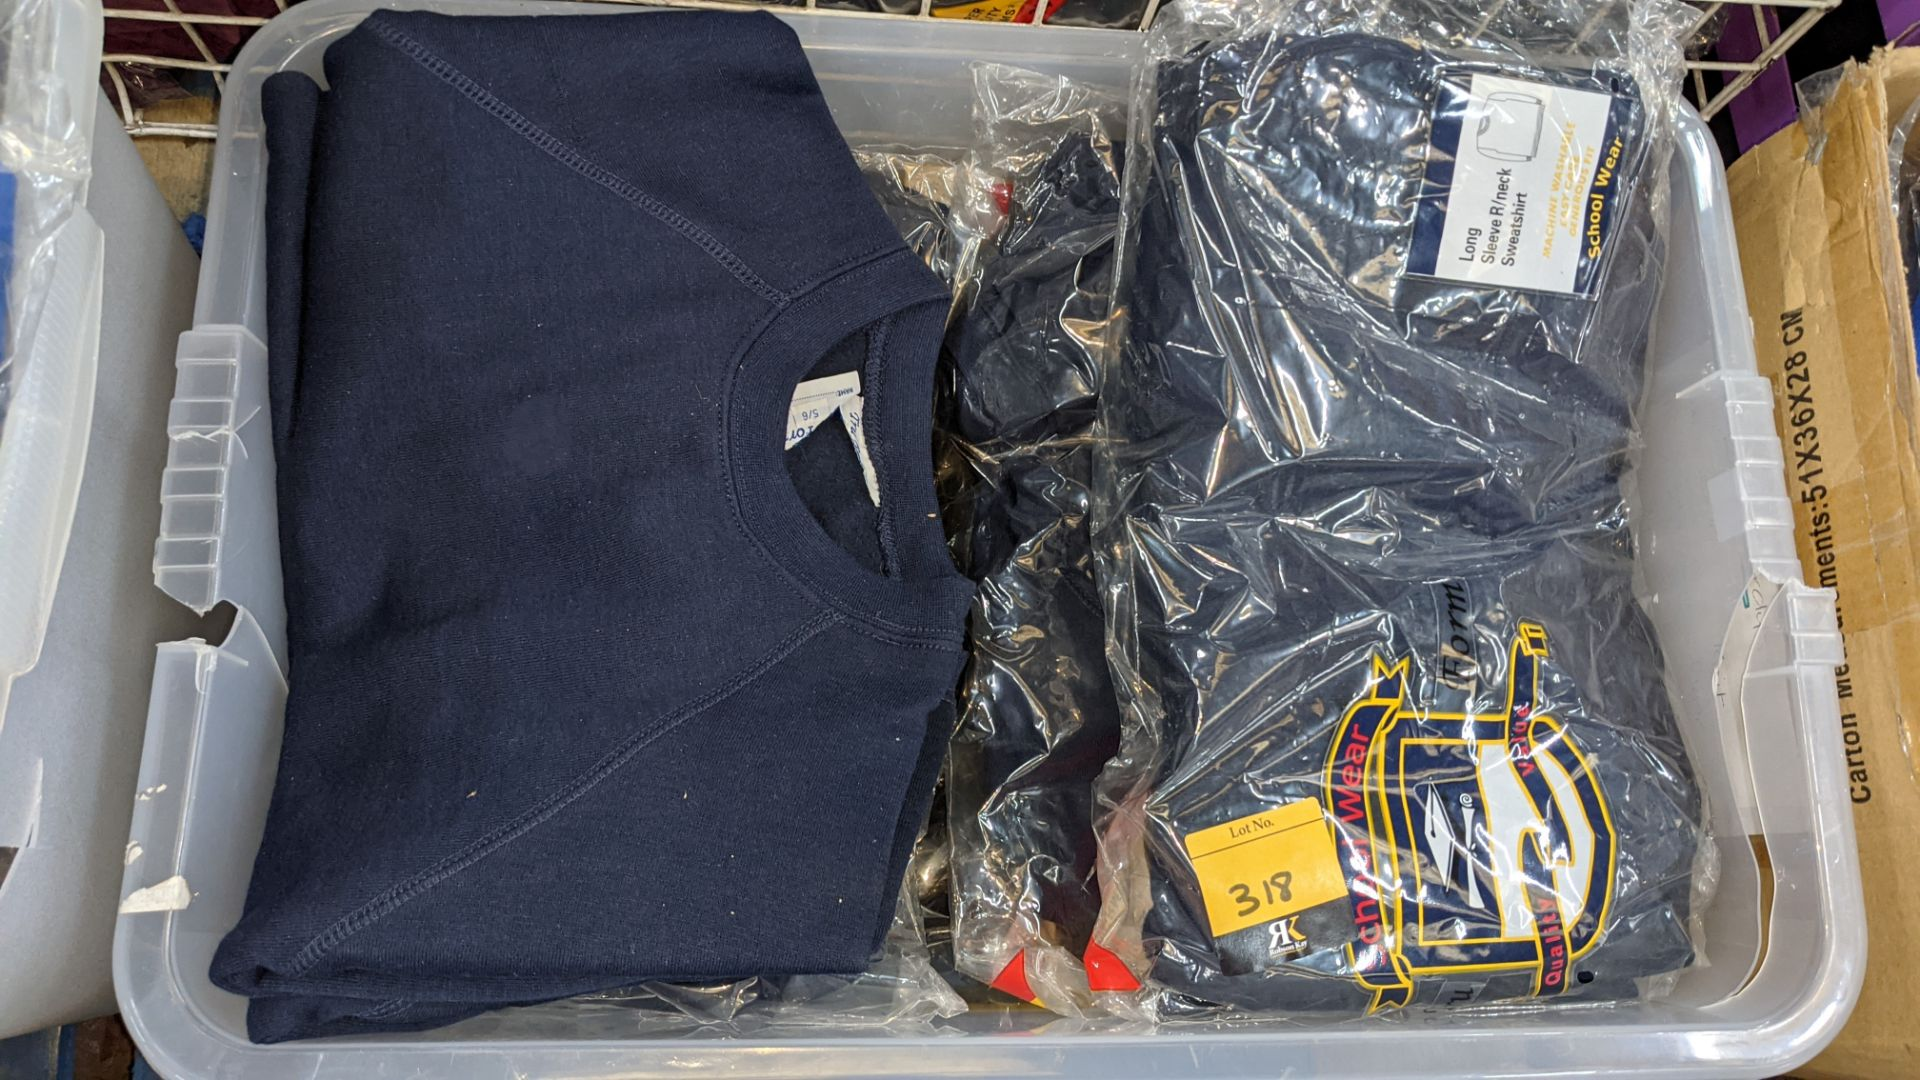 Approx 19 off blue children's sweatshirts & similar - the contents of 1 crate. NB crate excluded - Image 4 of 4